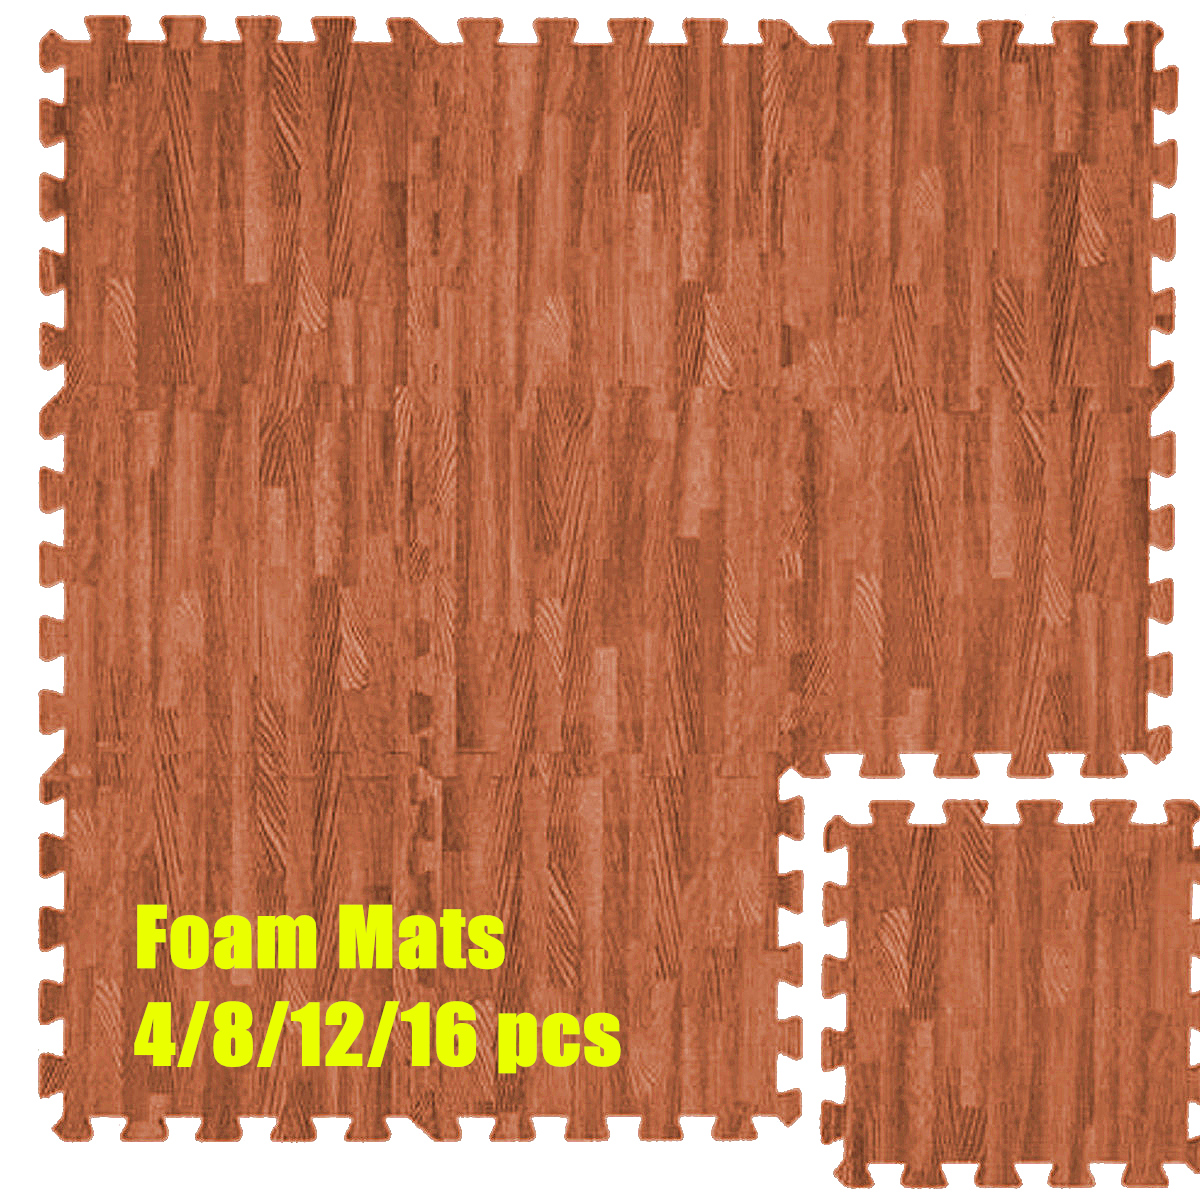 1Pcs 31x31cm EVA Foam Brown Easy Cleaning Imitation Wood Kids Play Floor Mats Baby Play Mat